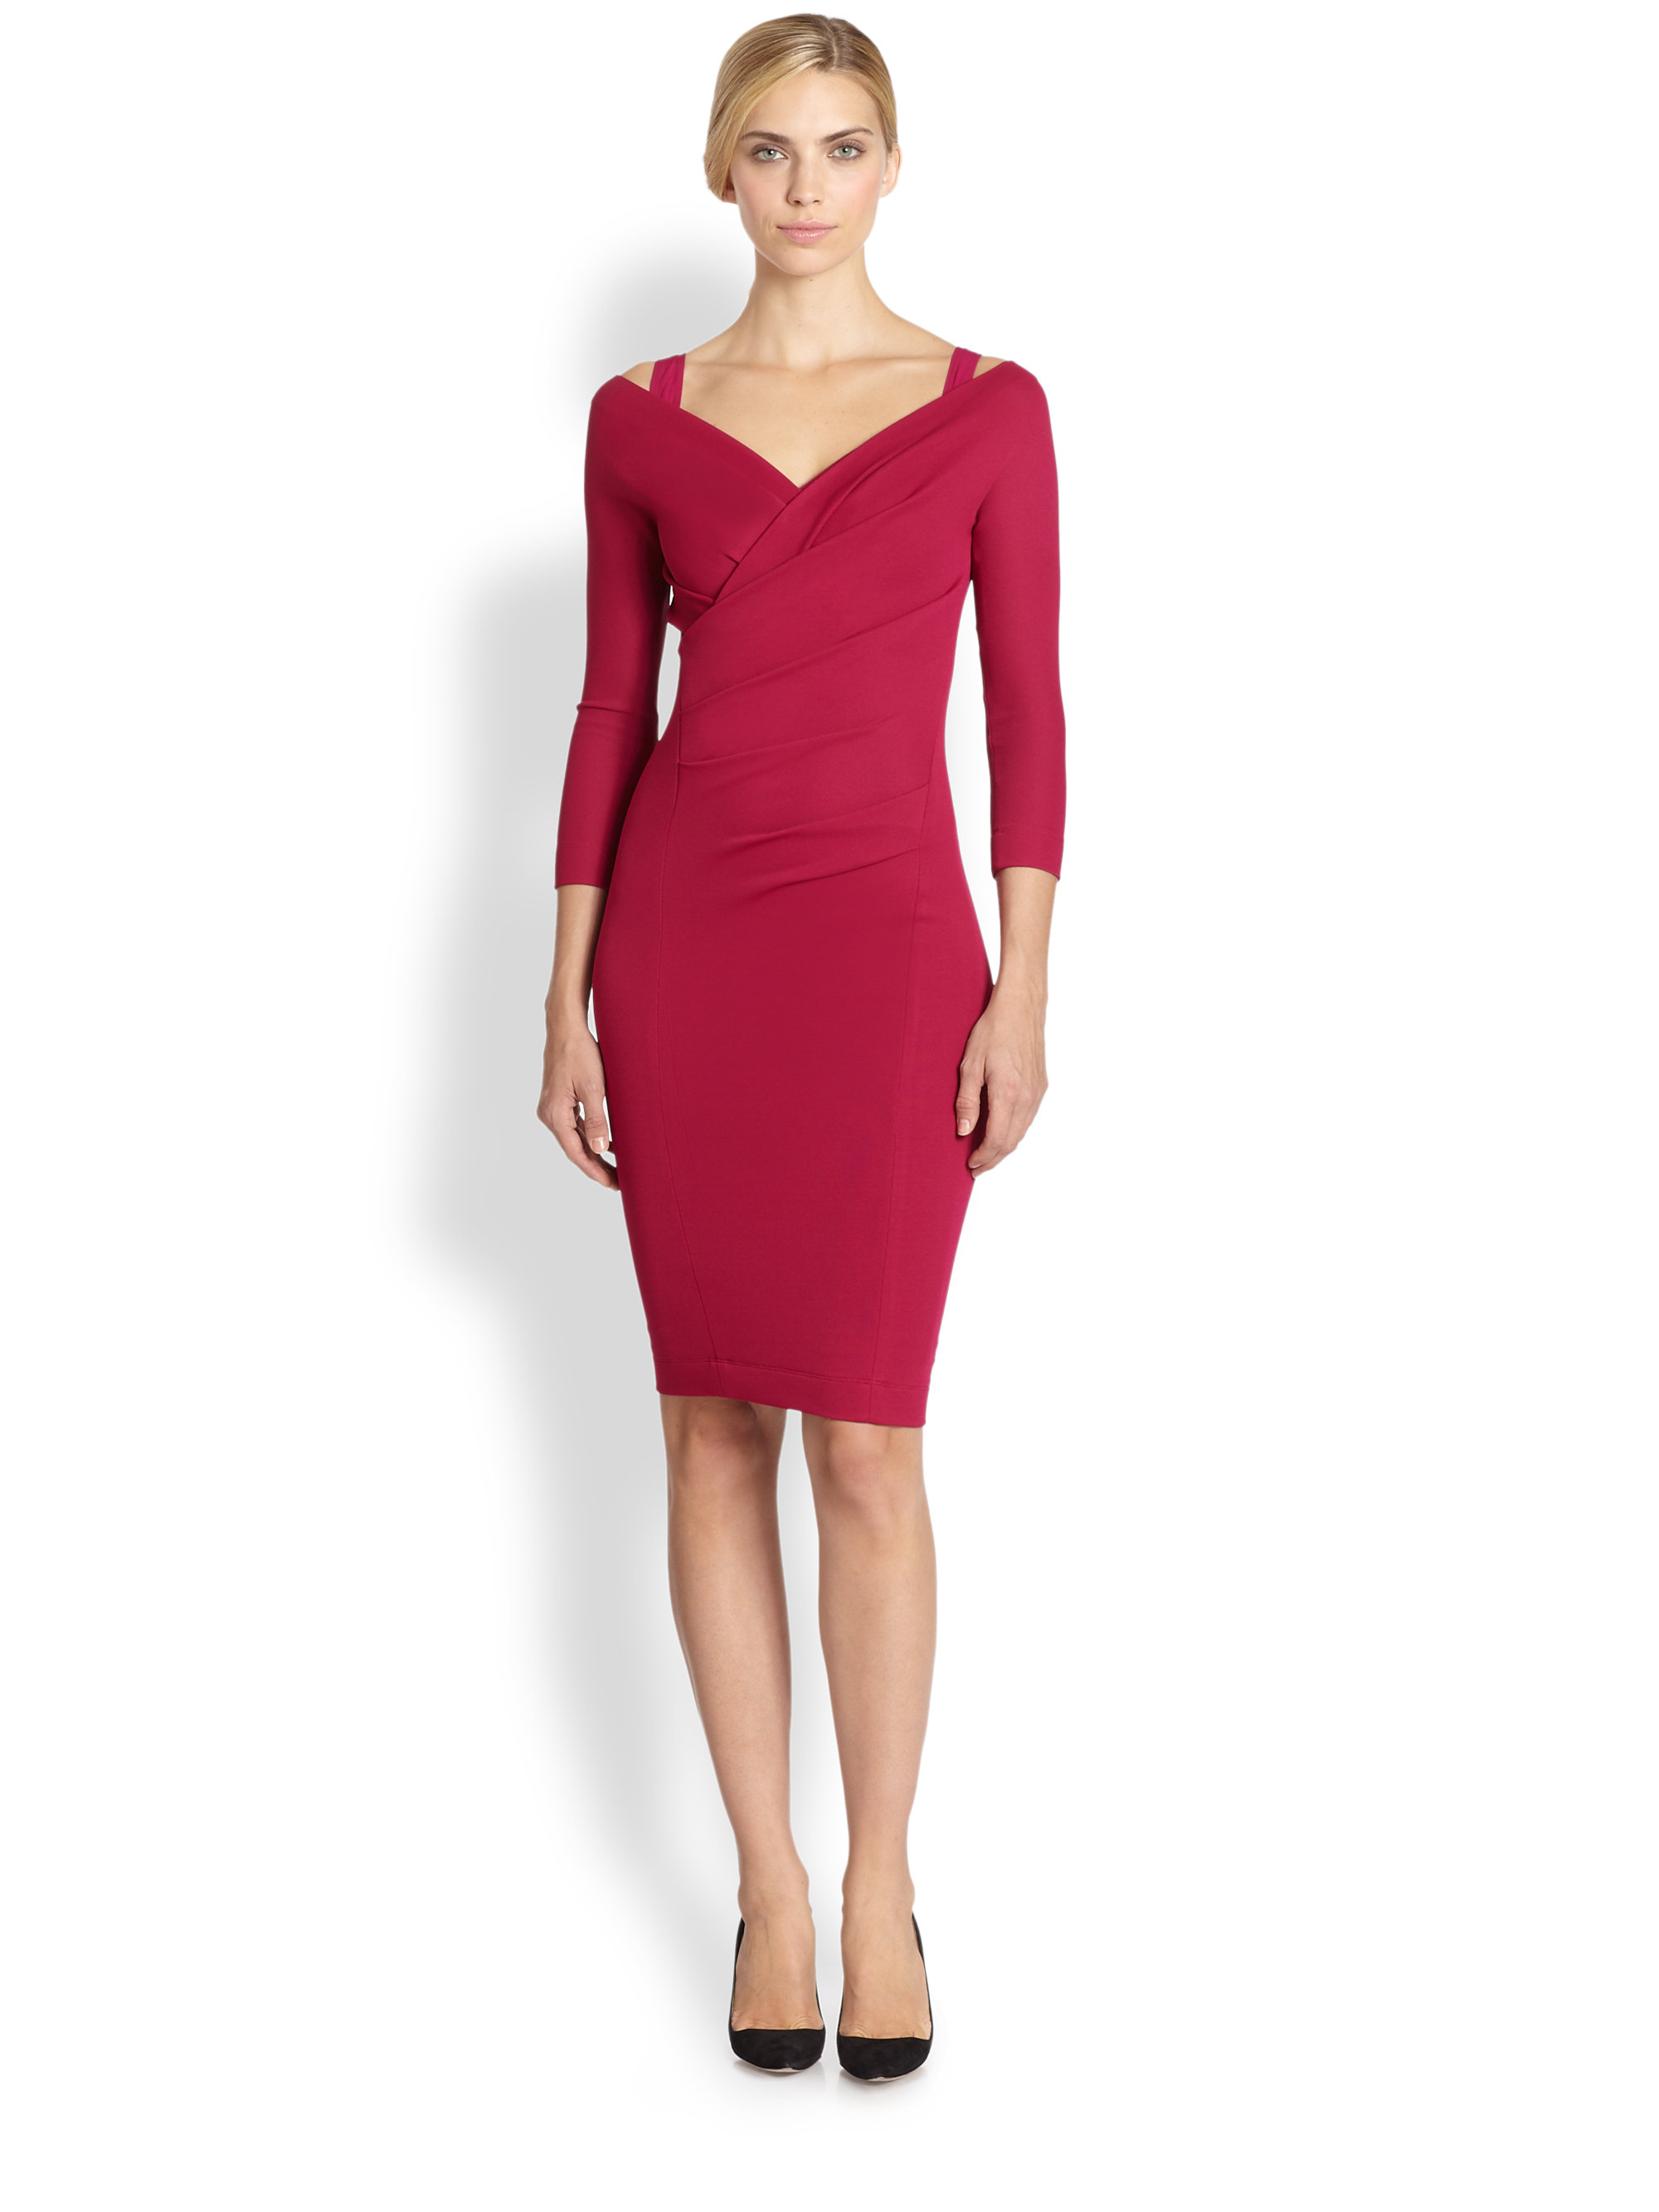 Donna karan new york vneck drape dress in red cyclamen for Donna karen new york